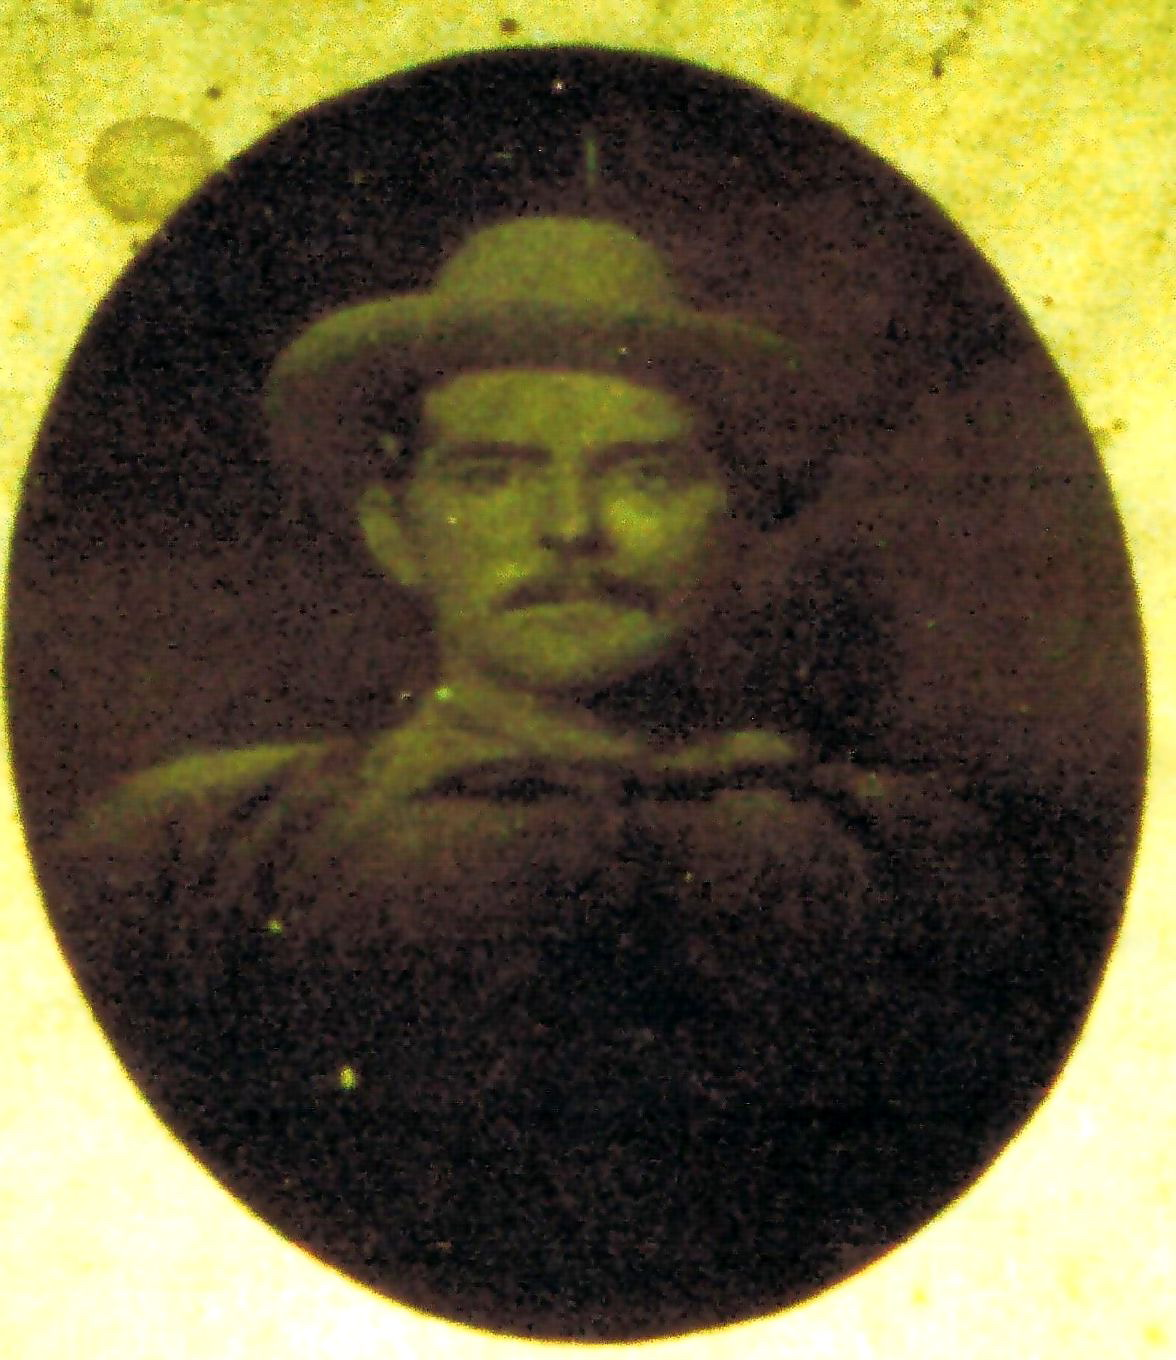 Undated photo said to be of Ozeme Roy (1862-1909)